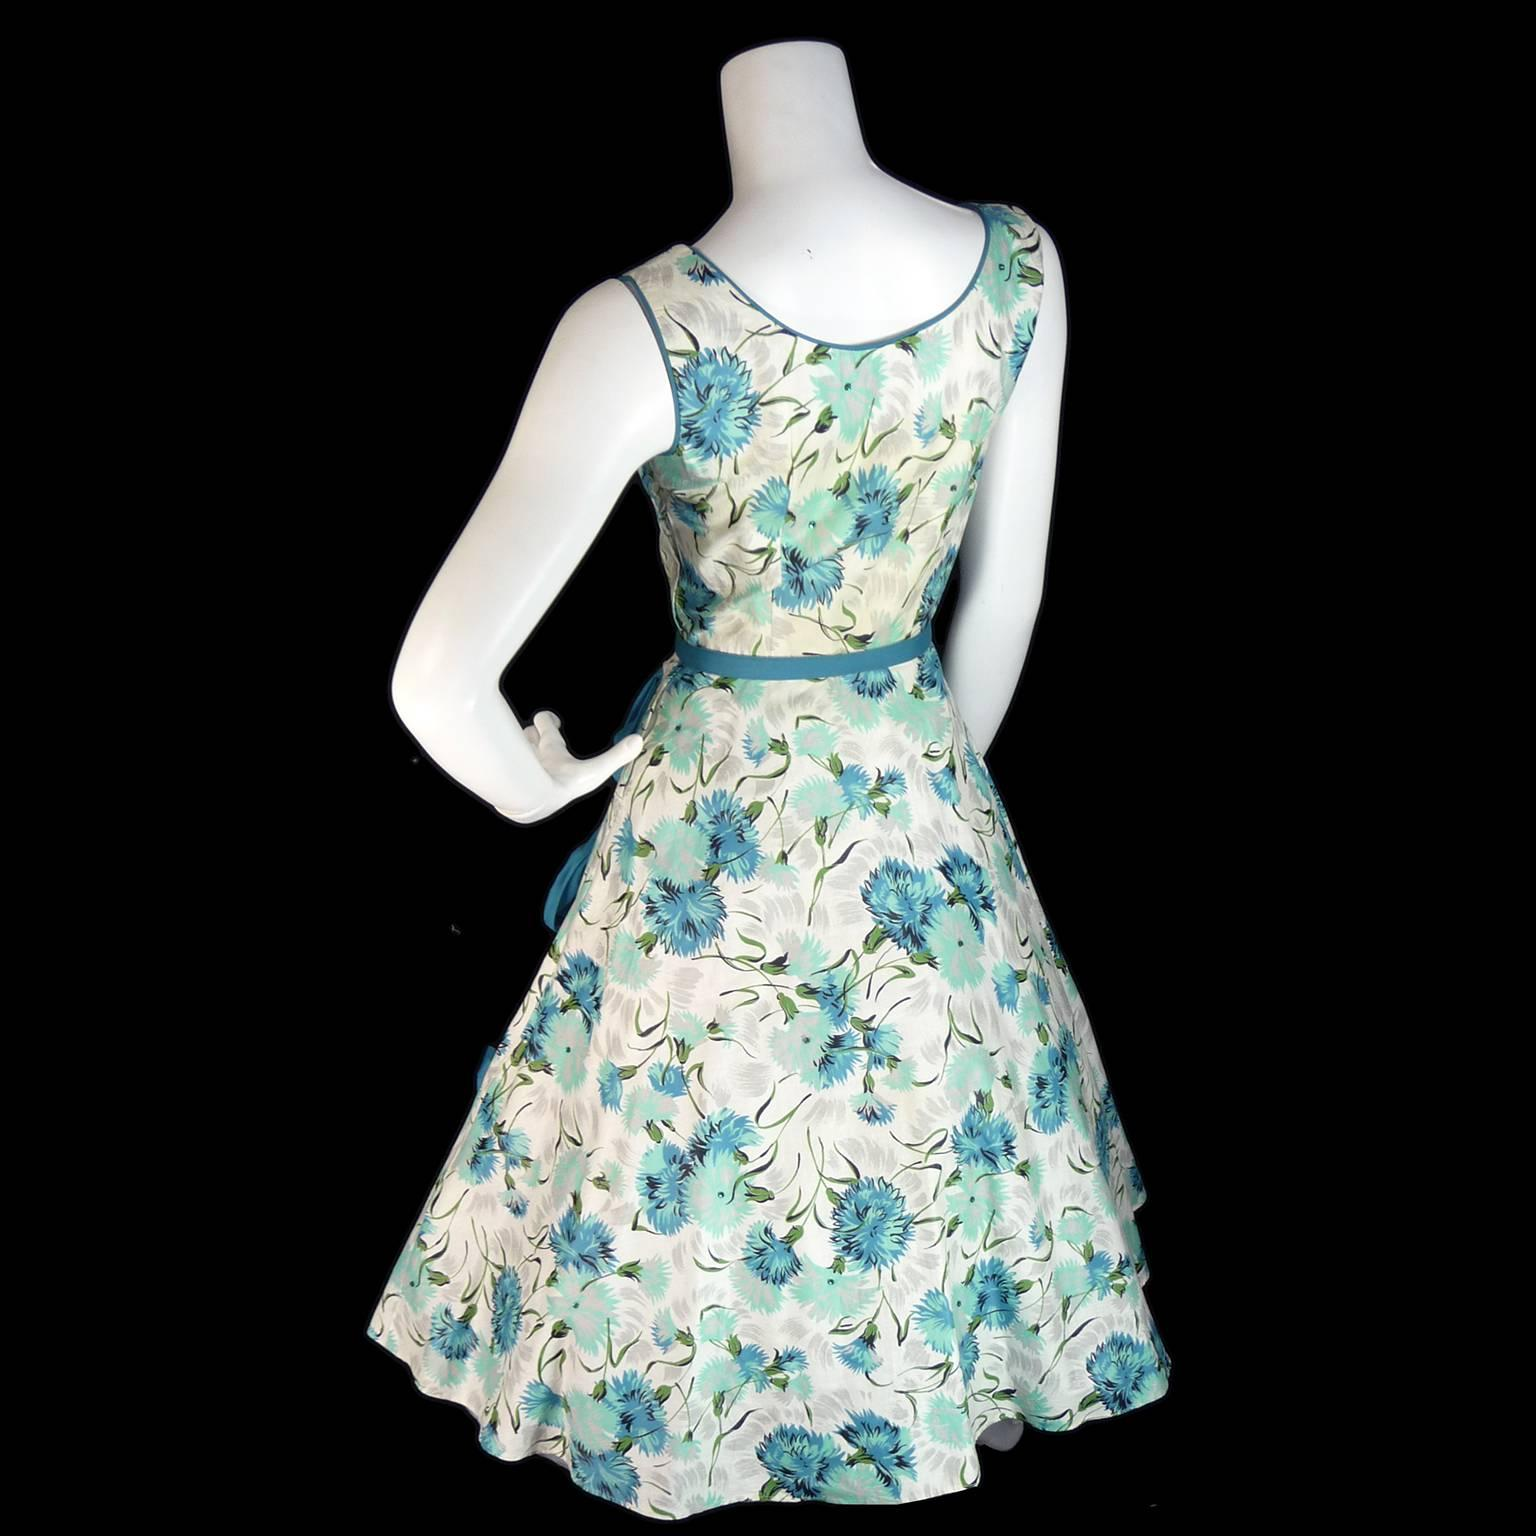 1950s Blue Floral Vintage Dress Rhinestones Bows 50s Full Skirt Size ...